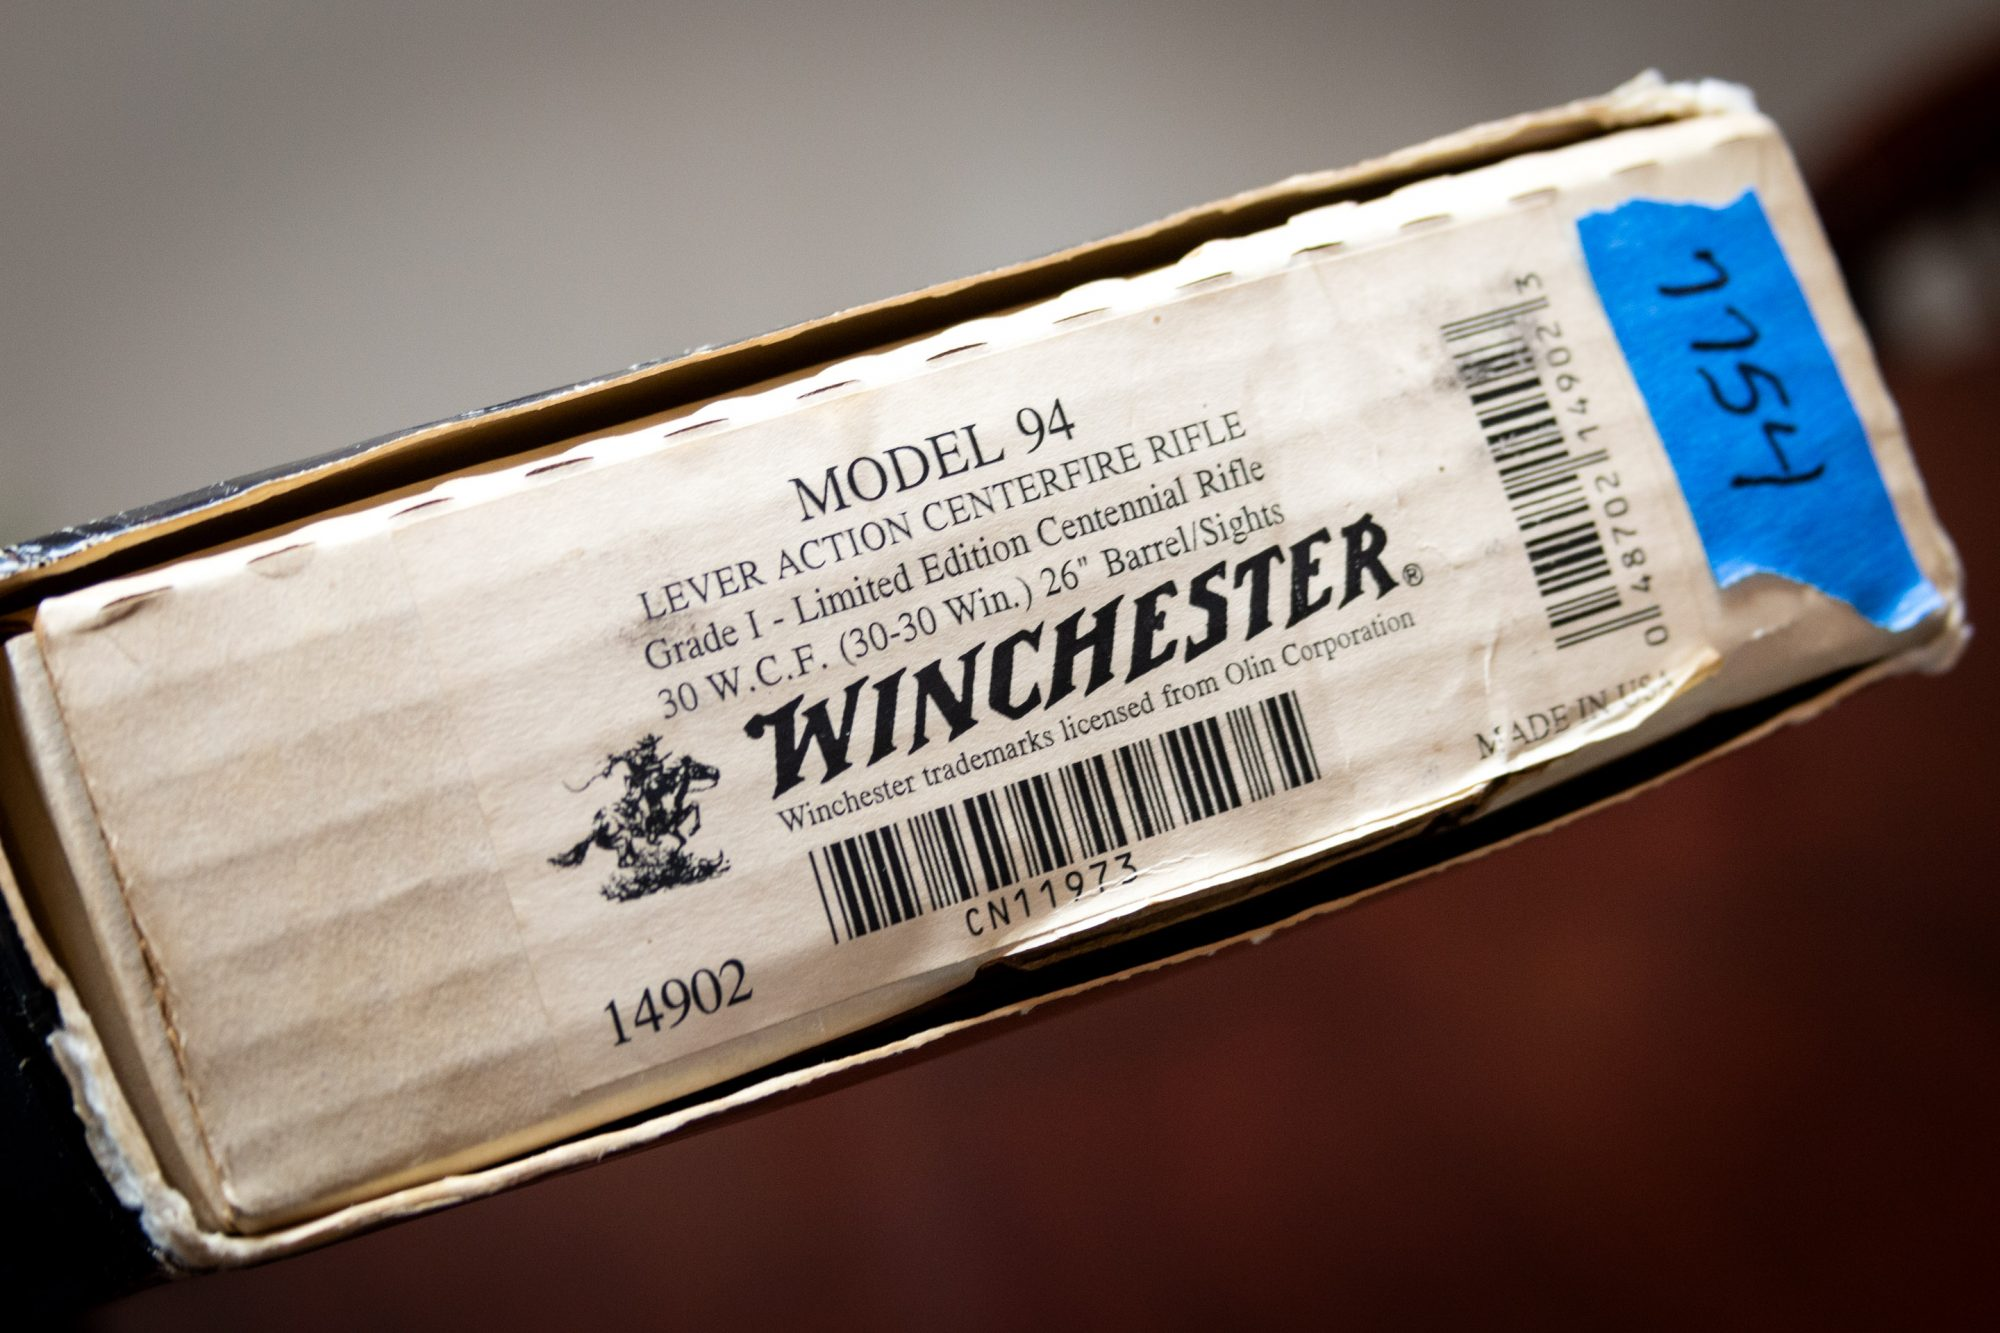 Photo of a pre-owned Winchester Model 94 Limited Edition Grade I Centennial Rifle, box